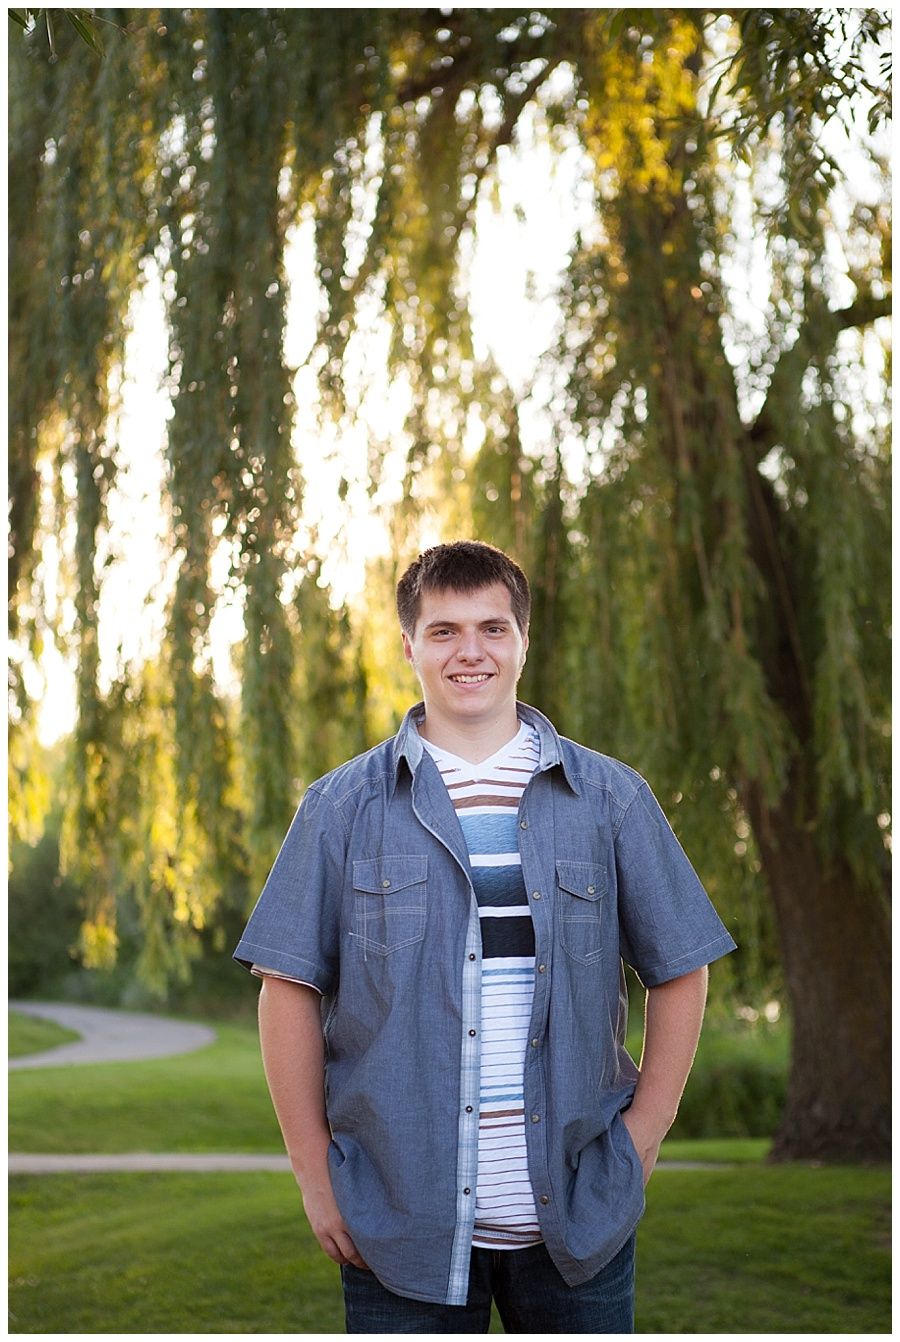 Lakeside and Urban Senior Pictures in Waconia MN